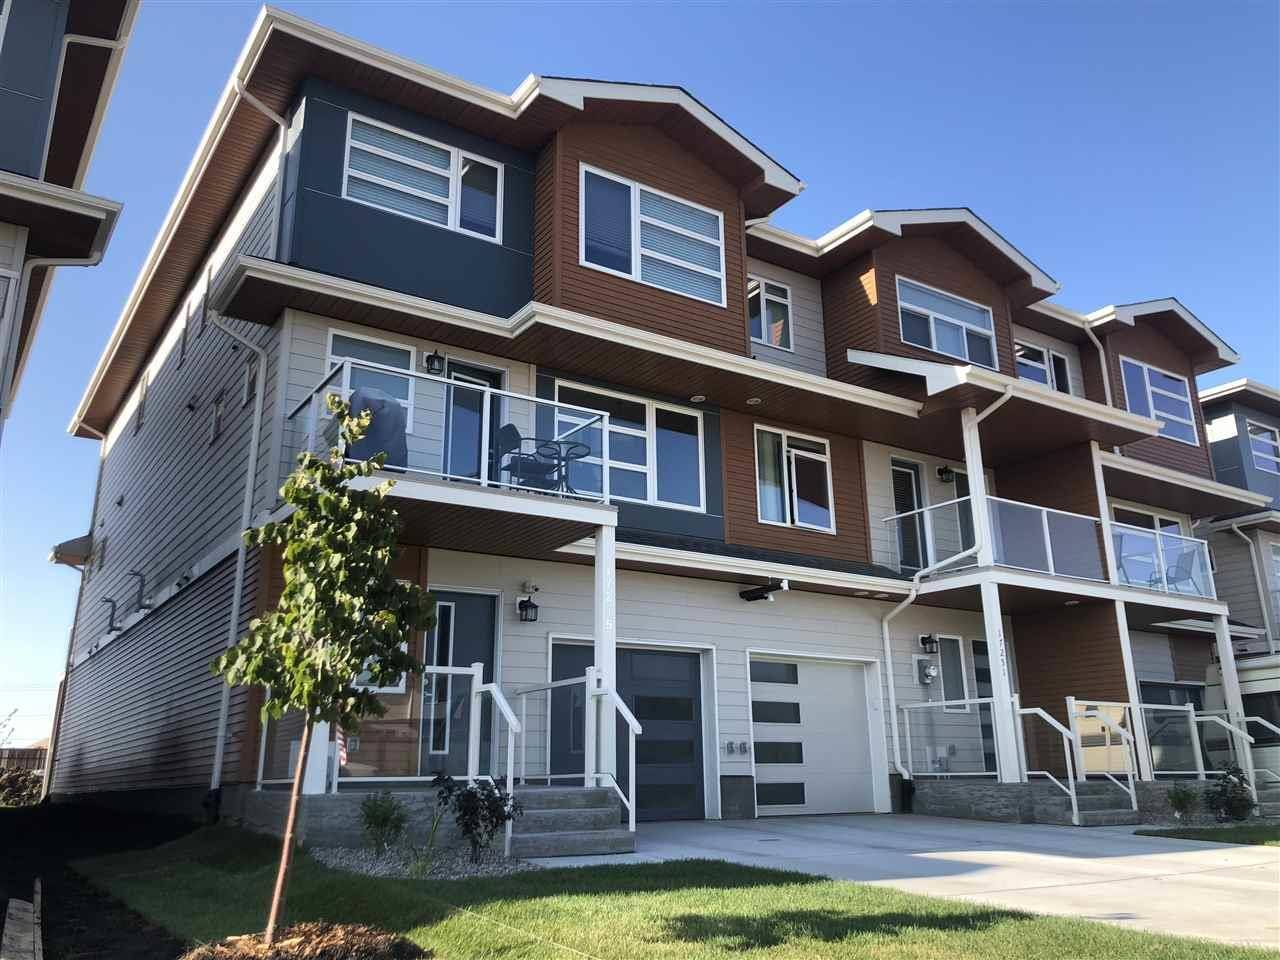 House for sale at 17245 9 Ave Sw Edmonton Alberta - MLS: E4168616